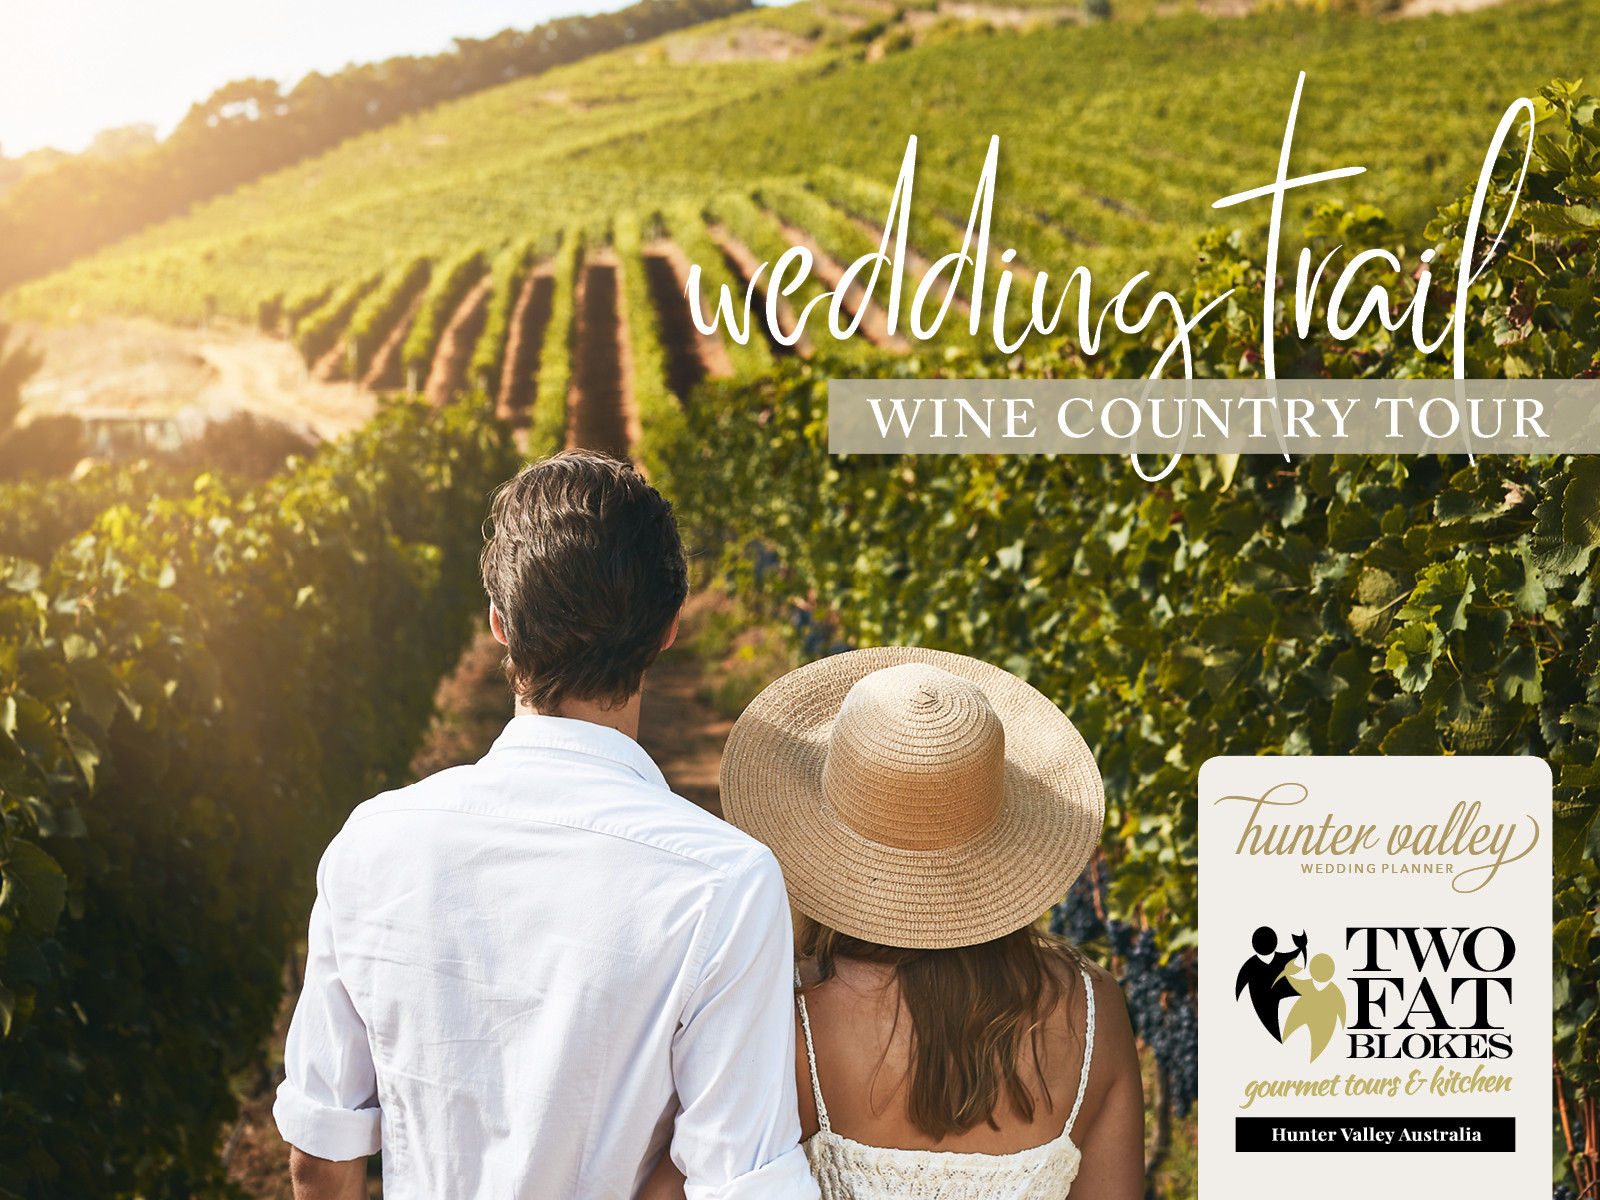 Wedding Trail Wine Country Tour